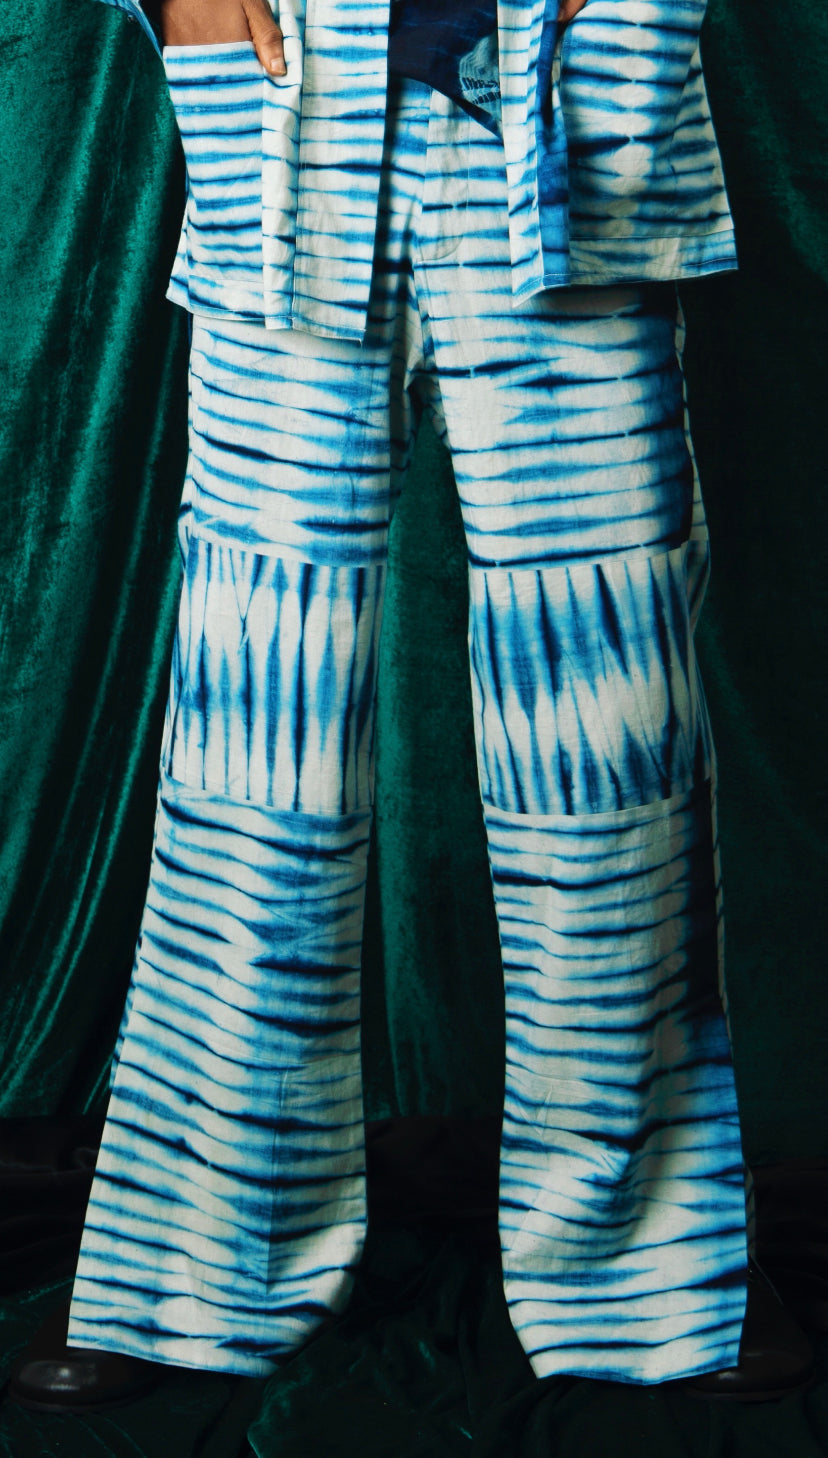 I.N OFFICIAL TIE DYE PANTS